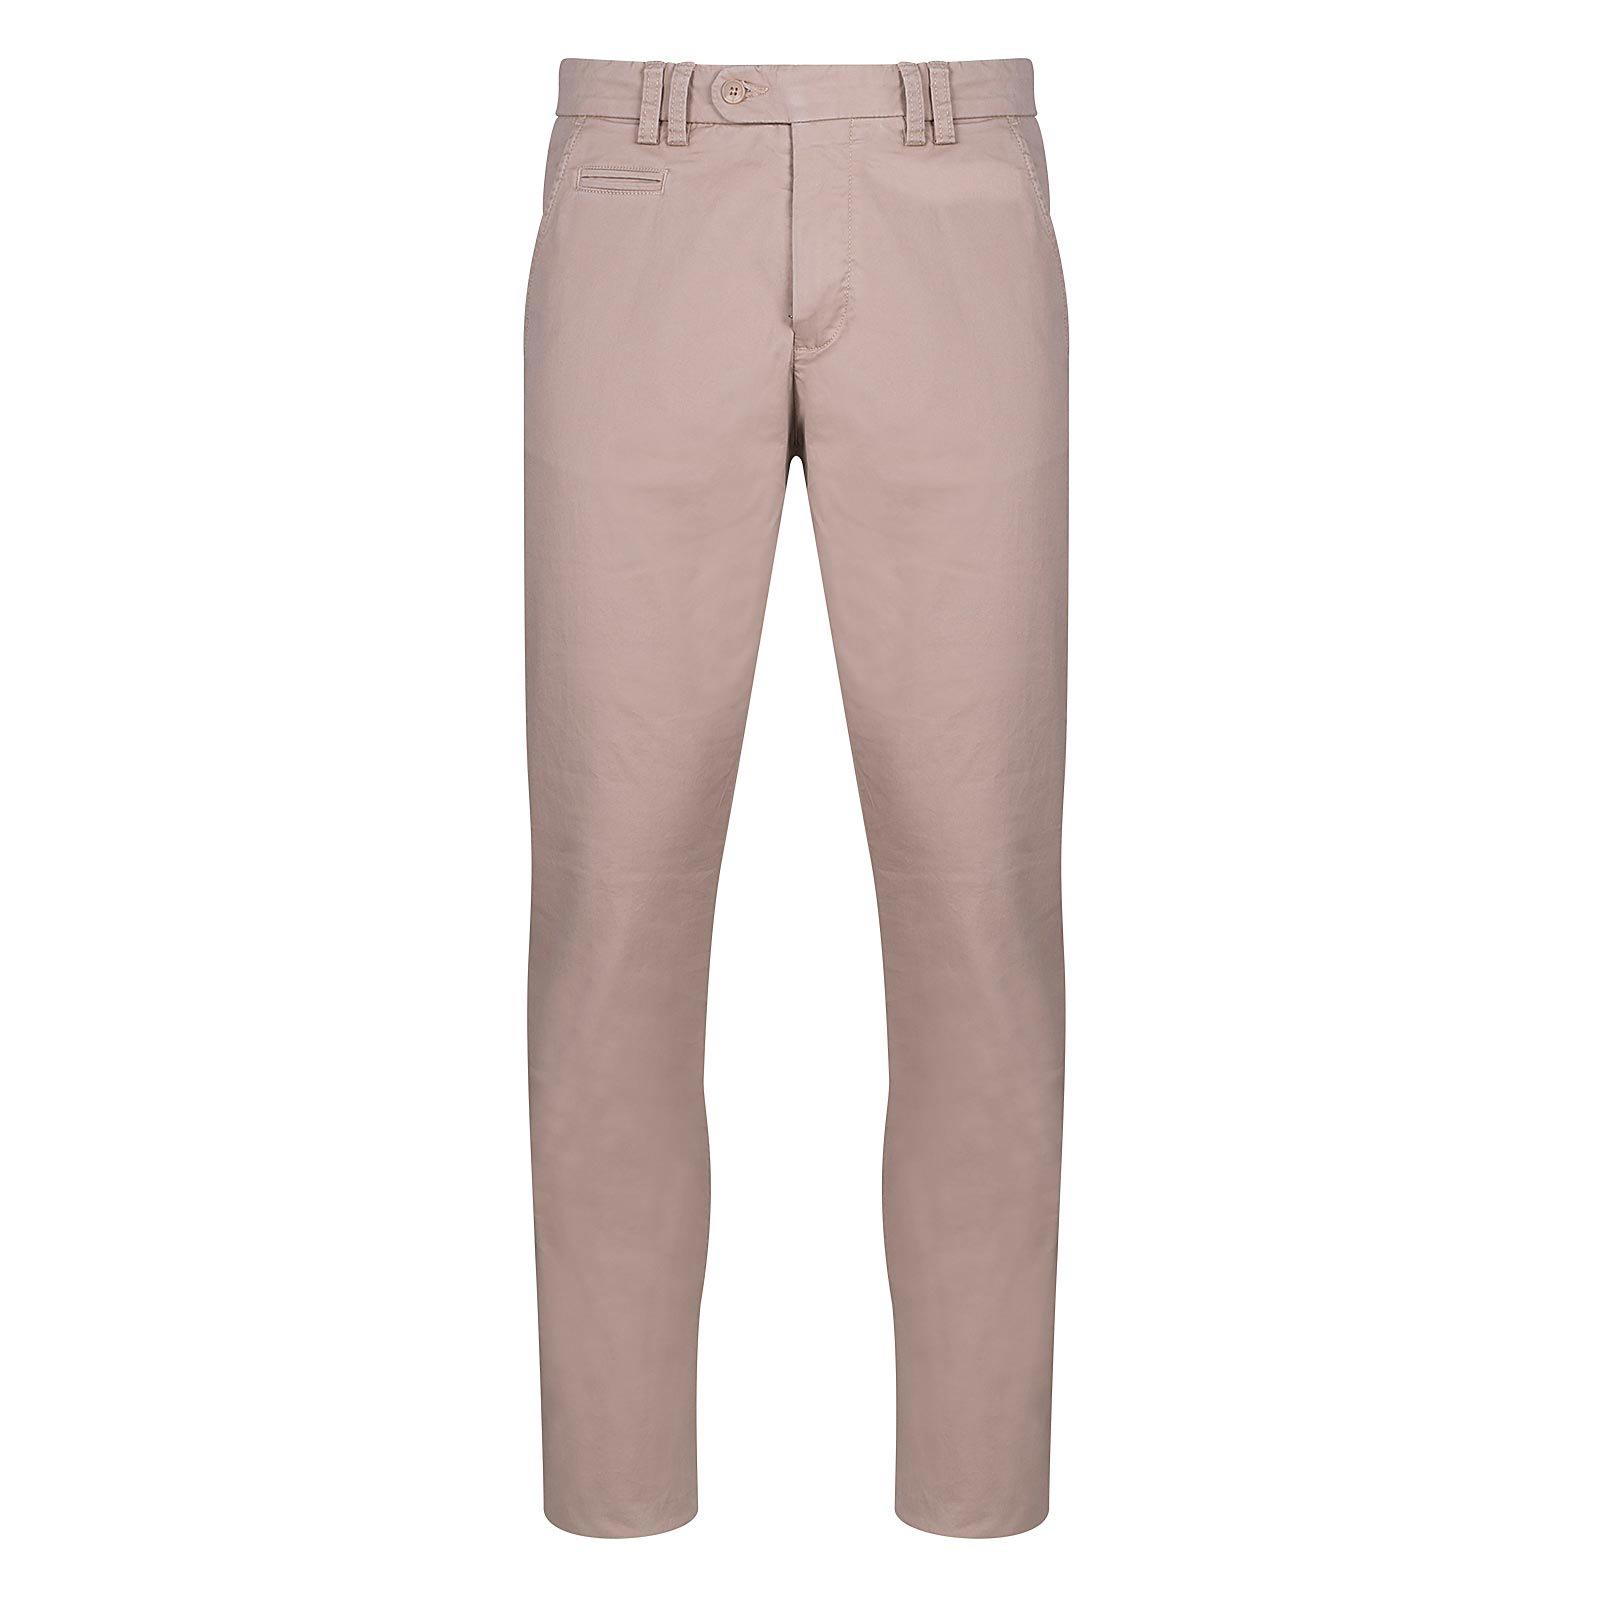 51125b5c7d9b Prince Oliver Παντελόνι Chino – Collection S S - Prince Oliver